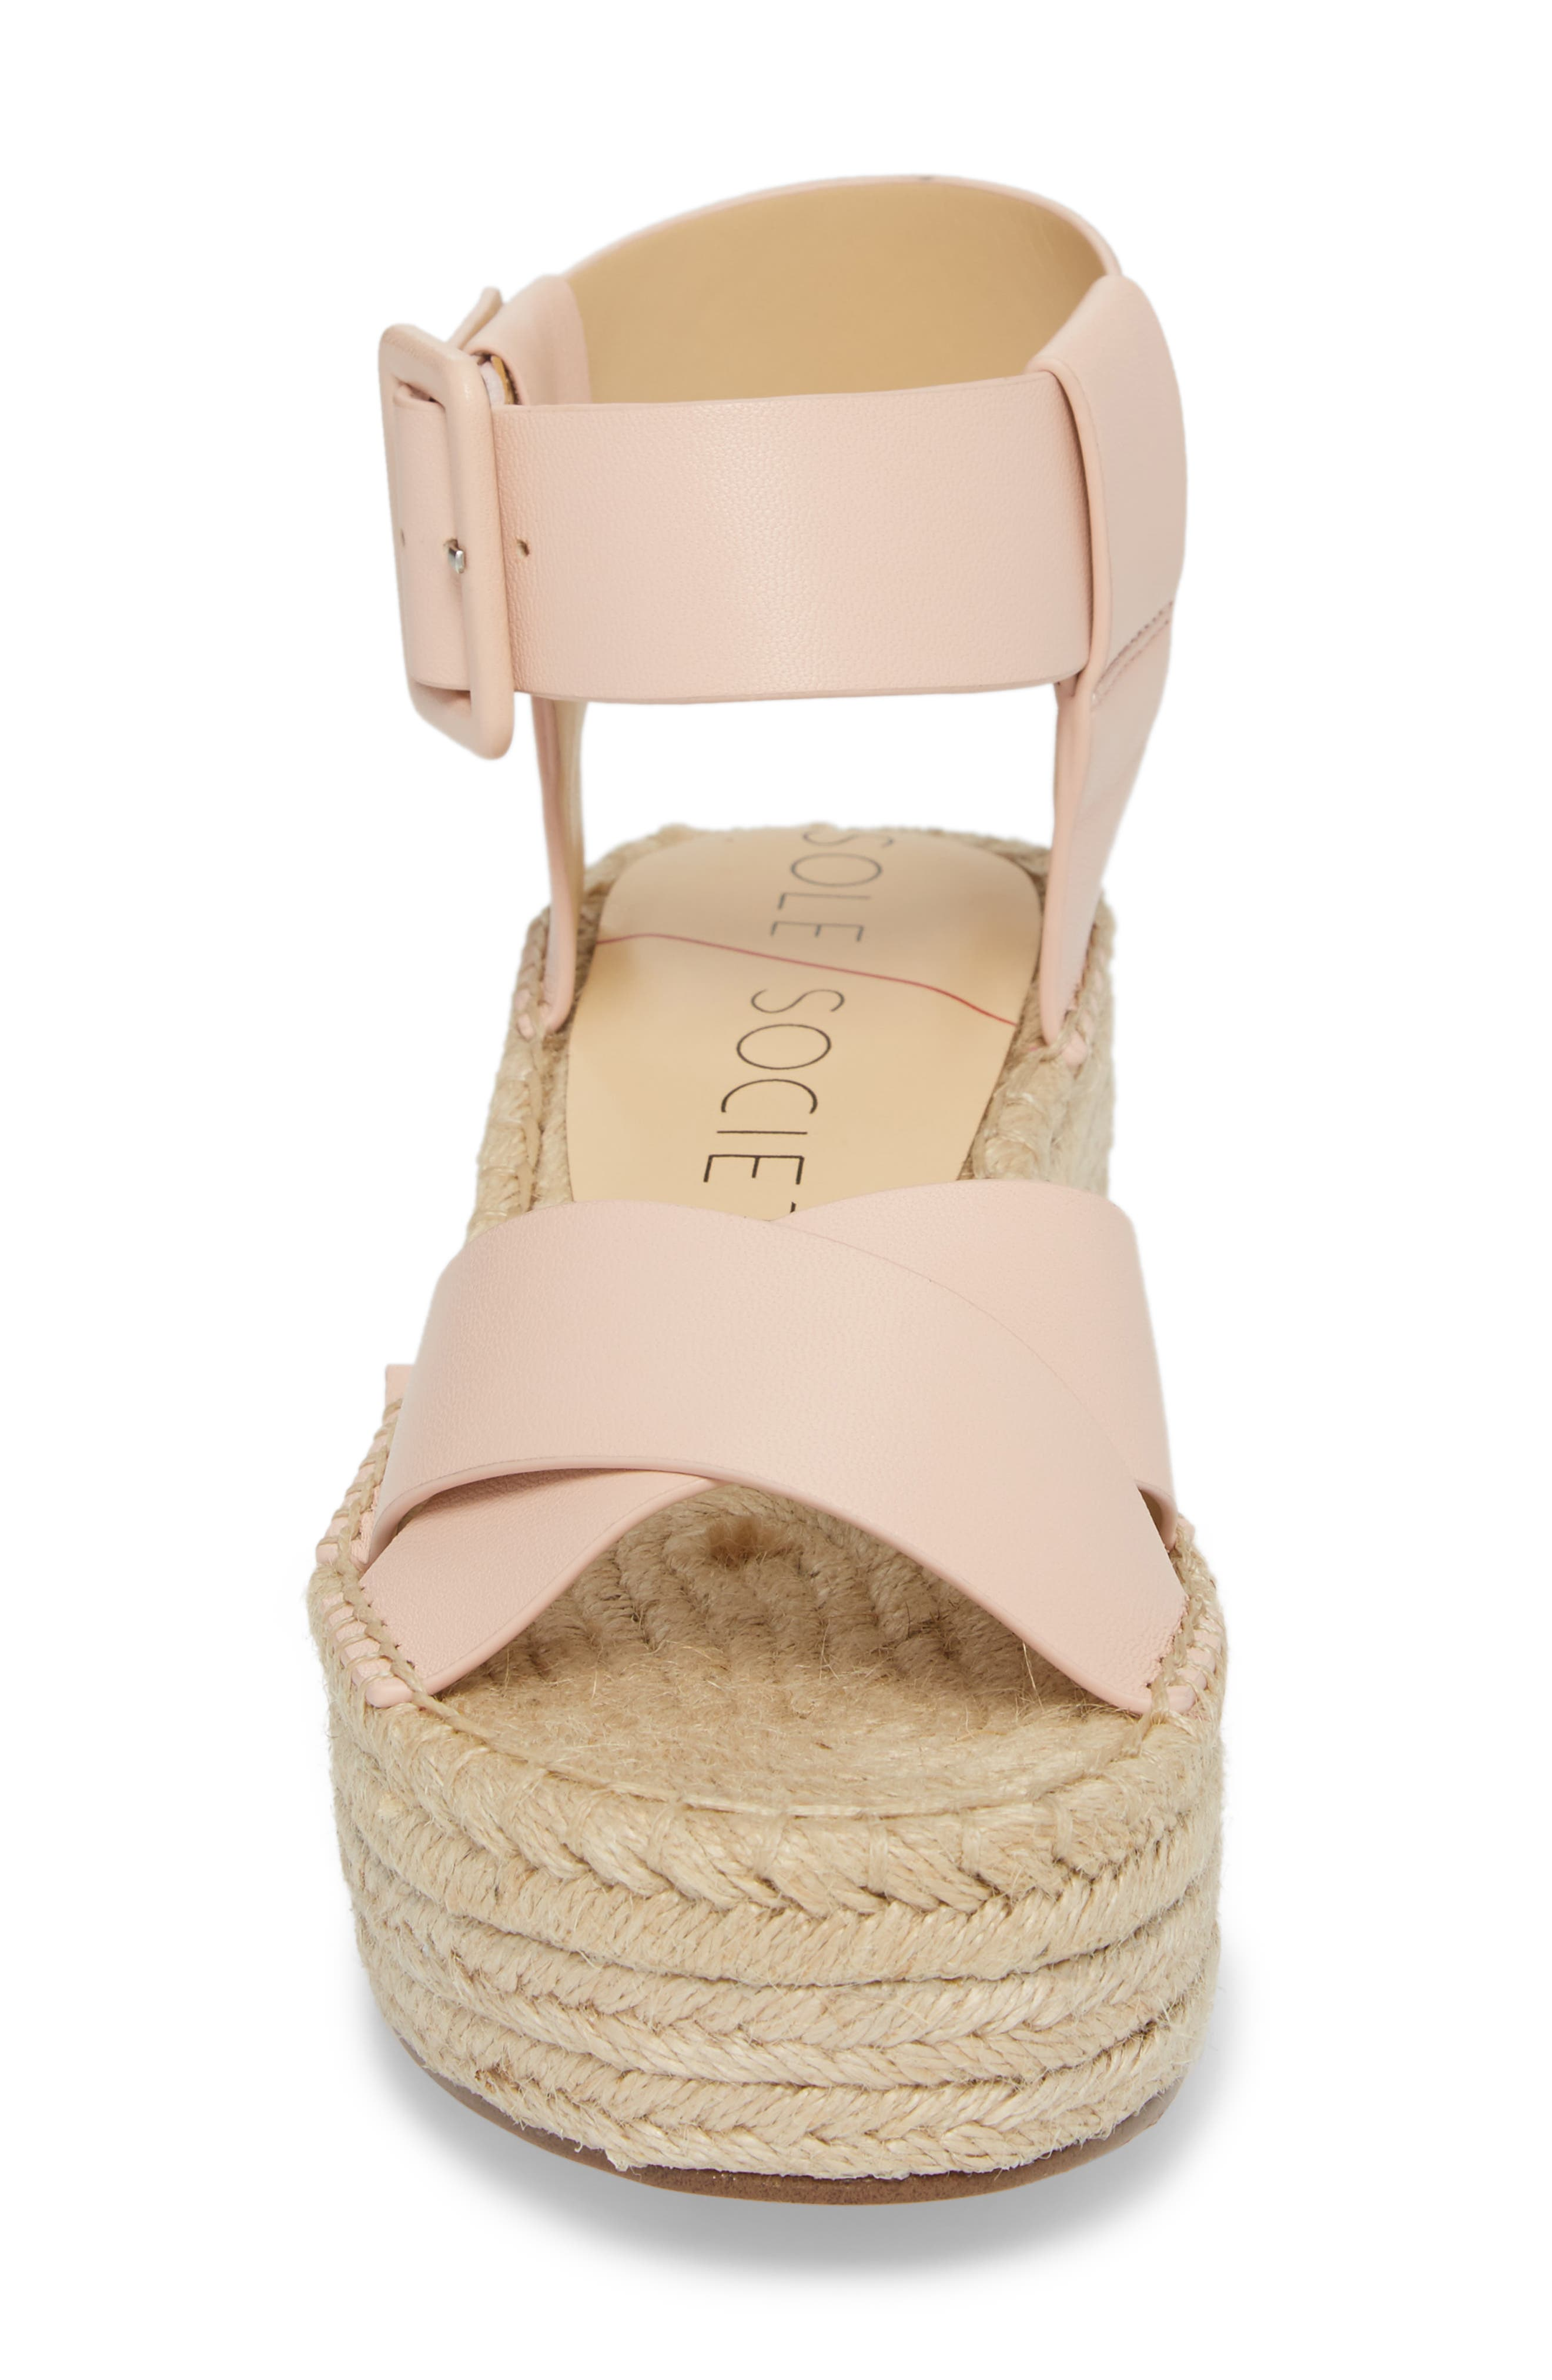 'Audrina' Platform Espadrille Sandal,                             Alternate thumbnail 4, color,                             Rose Blush